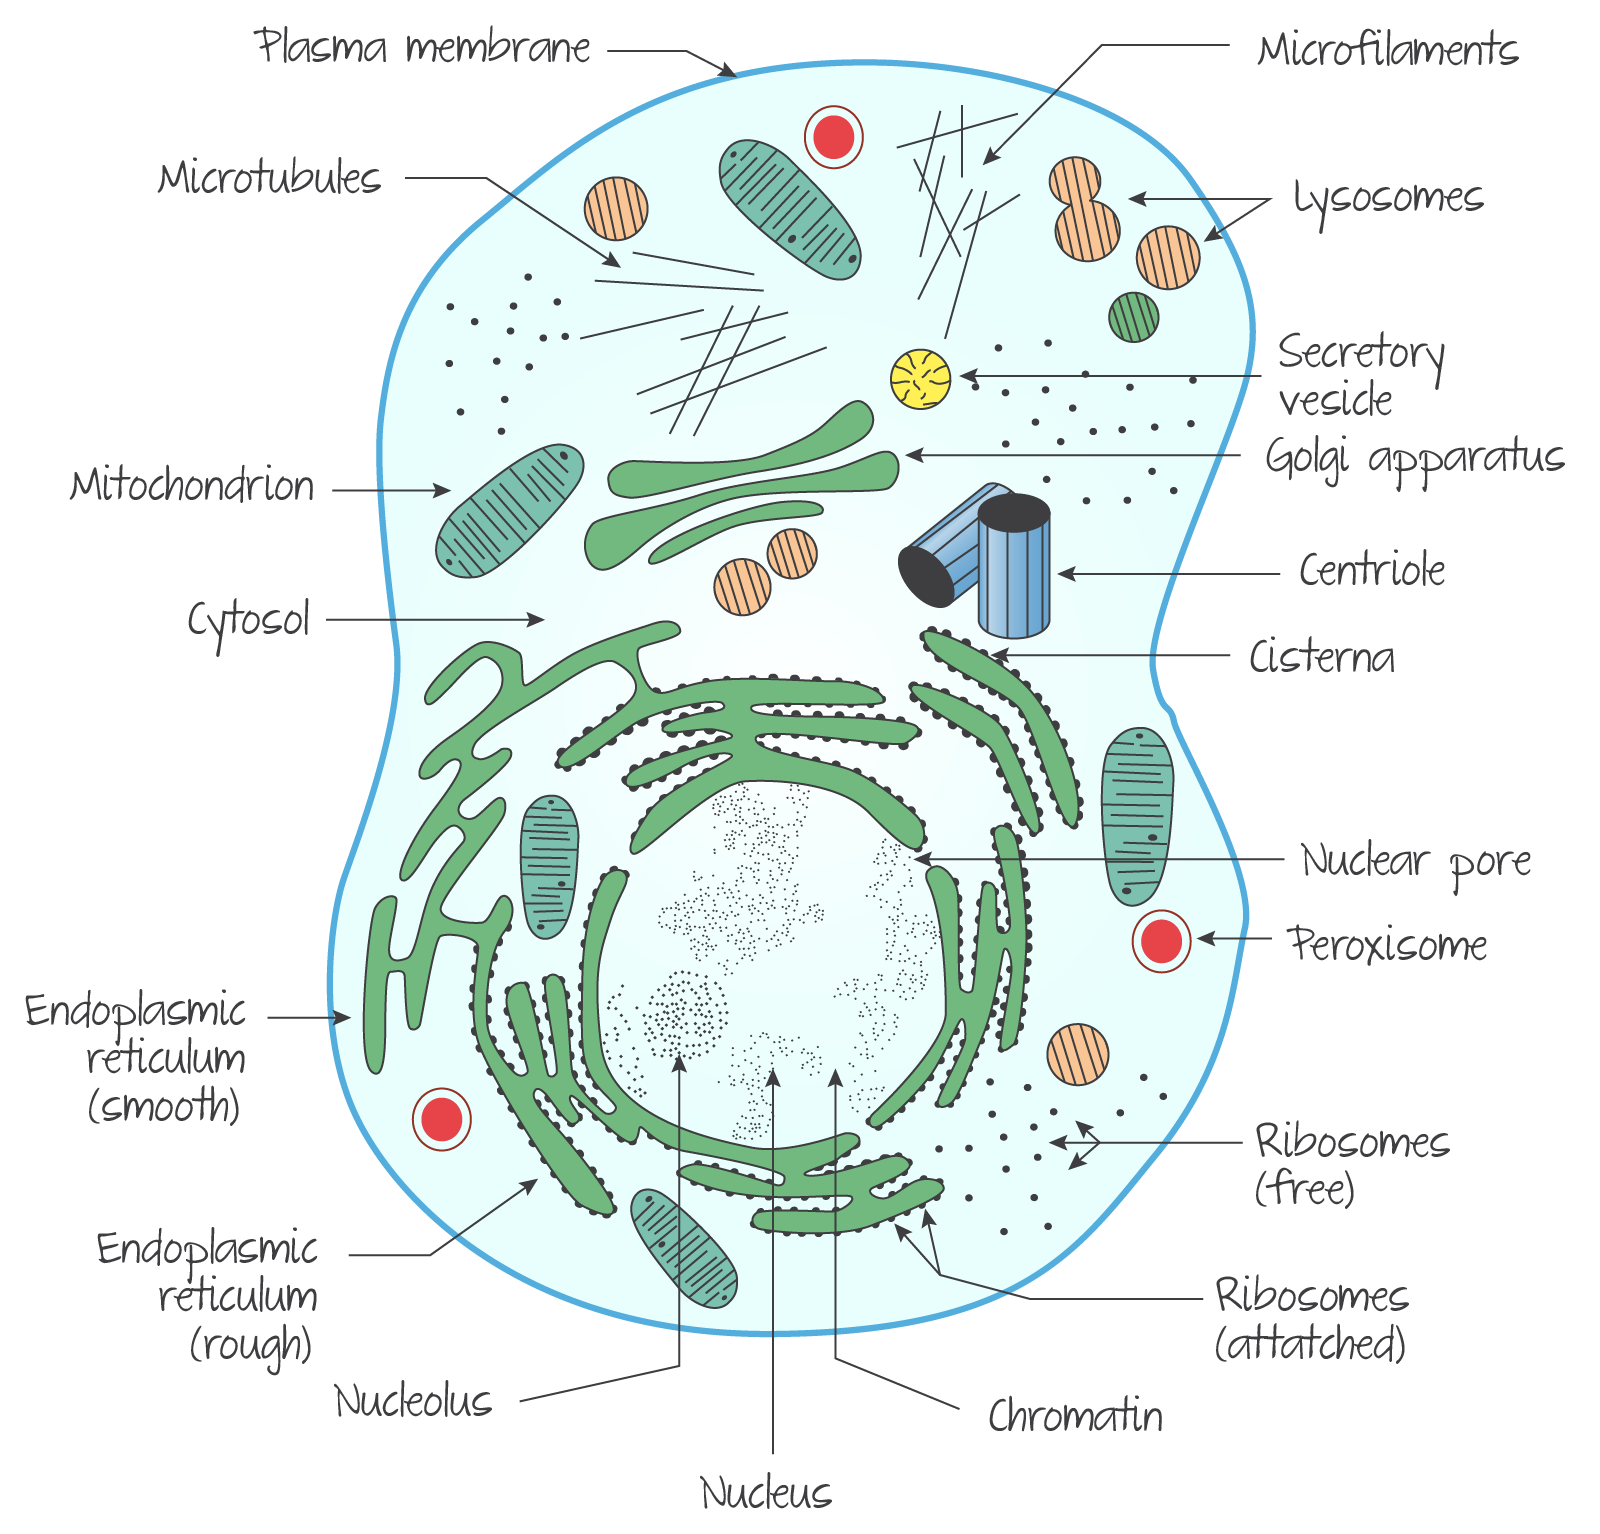 Ultrastructure Of A Eukaryotic Cell